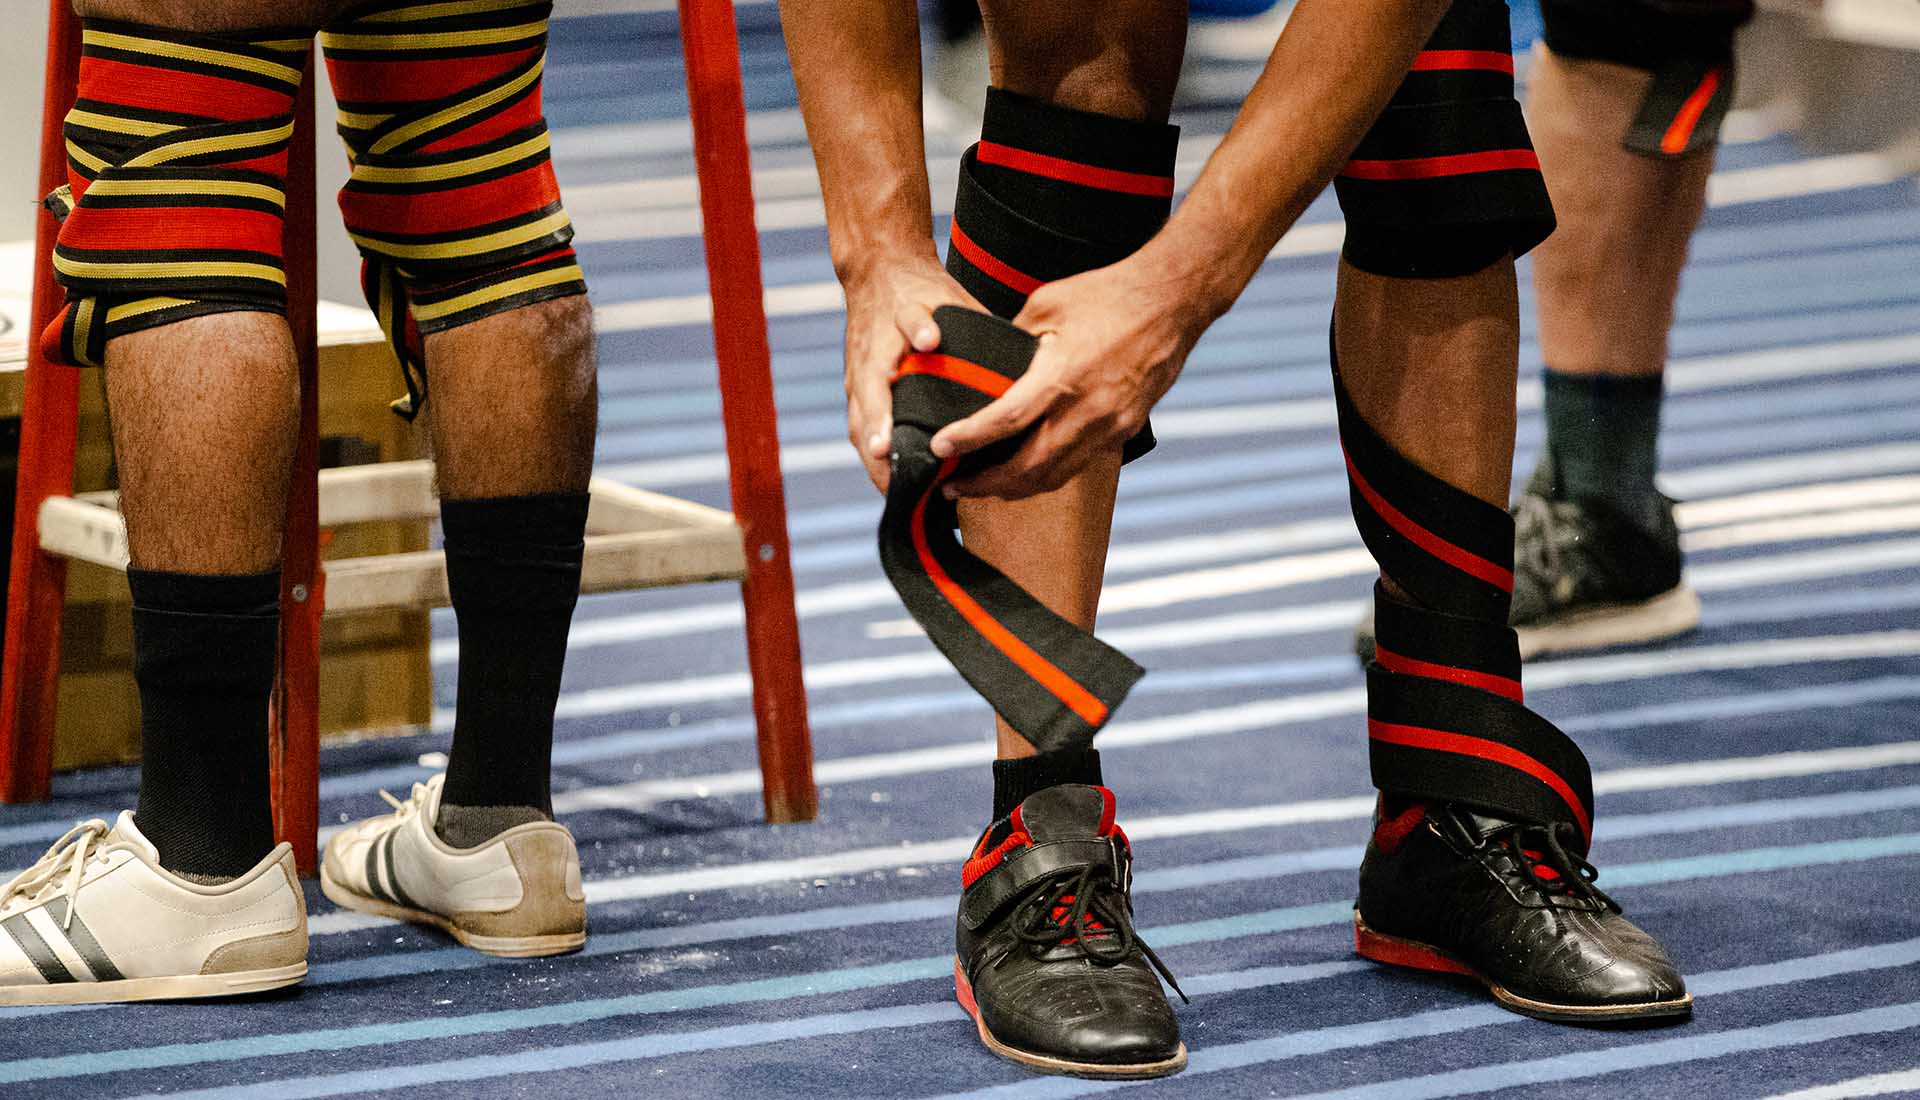 Legs, athlete powerlifter in knee wraps.